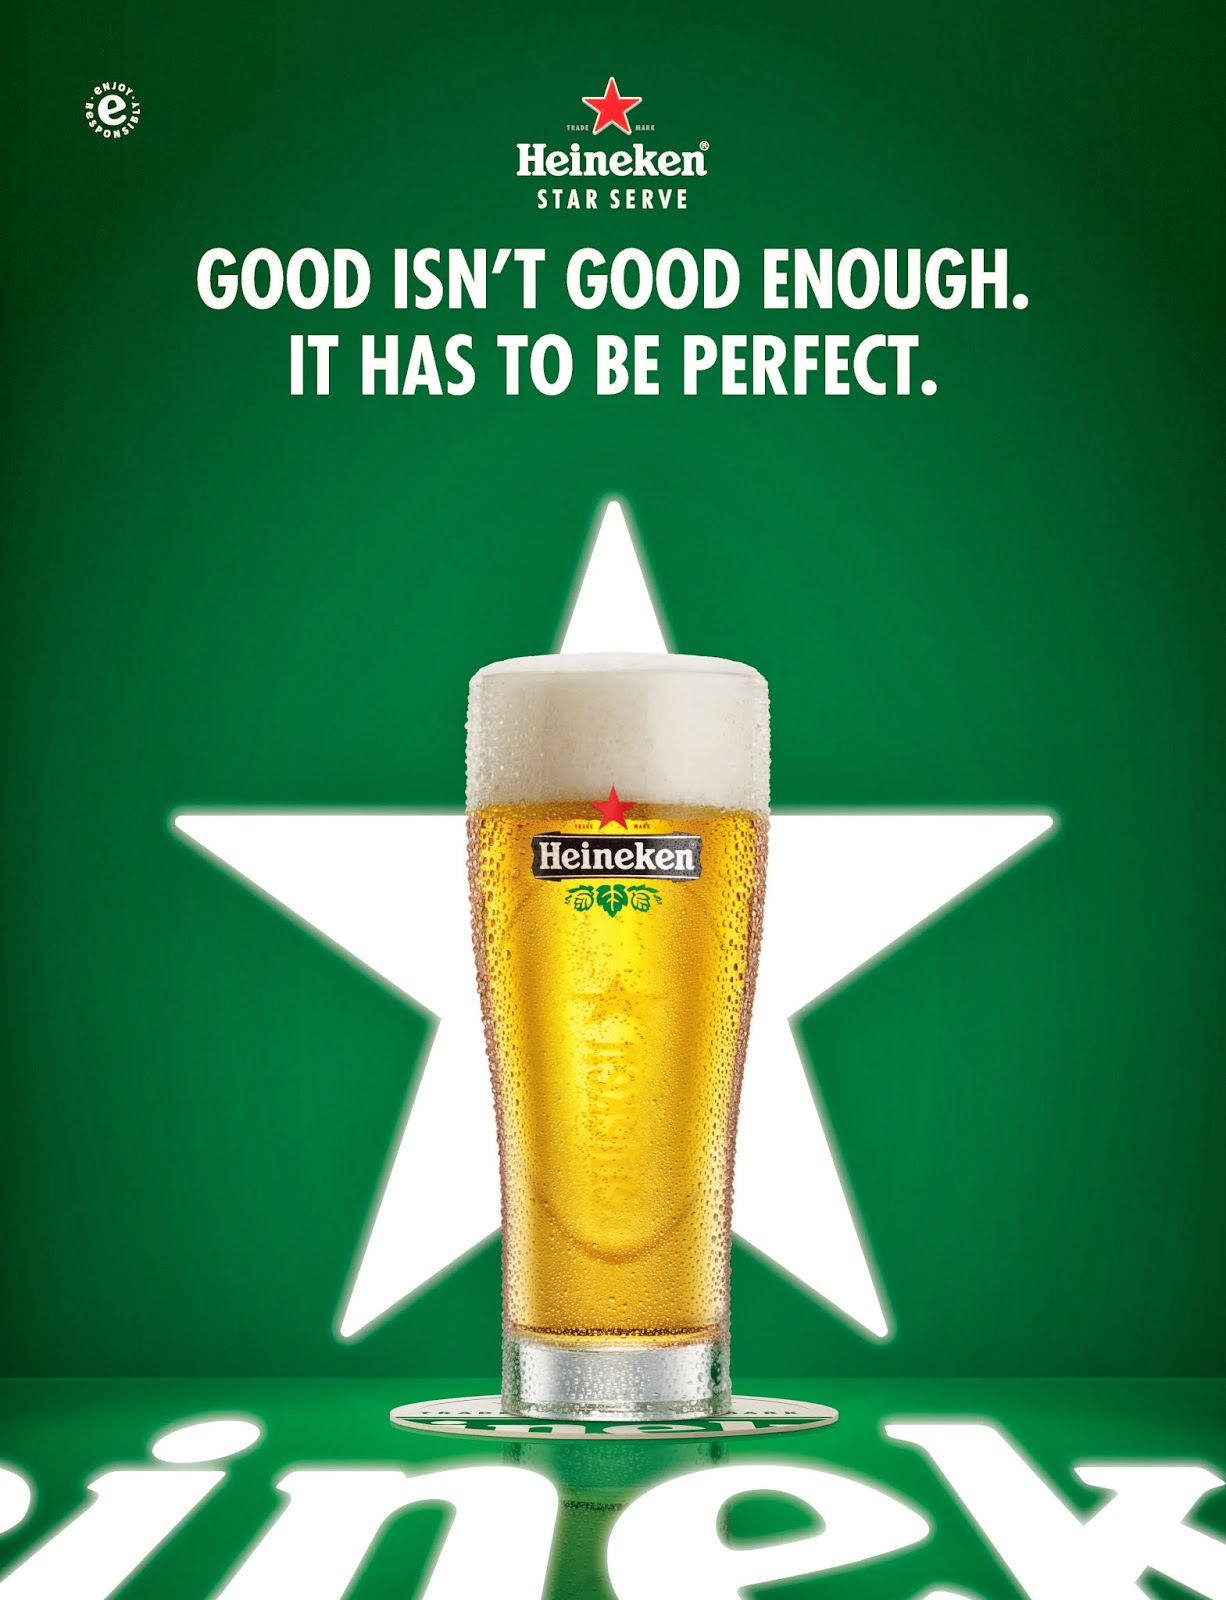 heineken just in time management Just in time management group scrl avenue louise, 149/24 b-1050 brussels belgium nocompany: 0888460271 5 contact michel duvivier, managing partner.